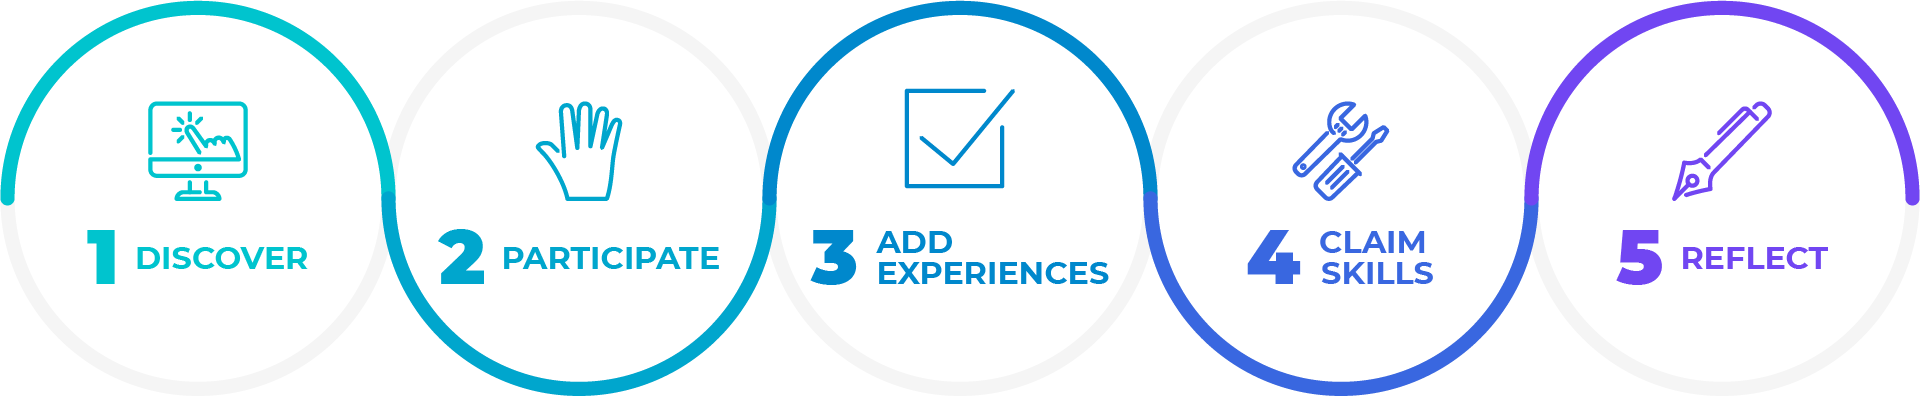 Discover, Participate, Add Experiences, Claim Skills, Reflect